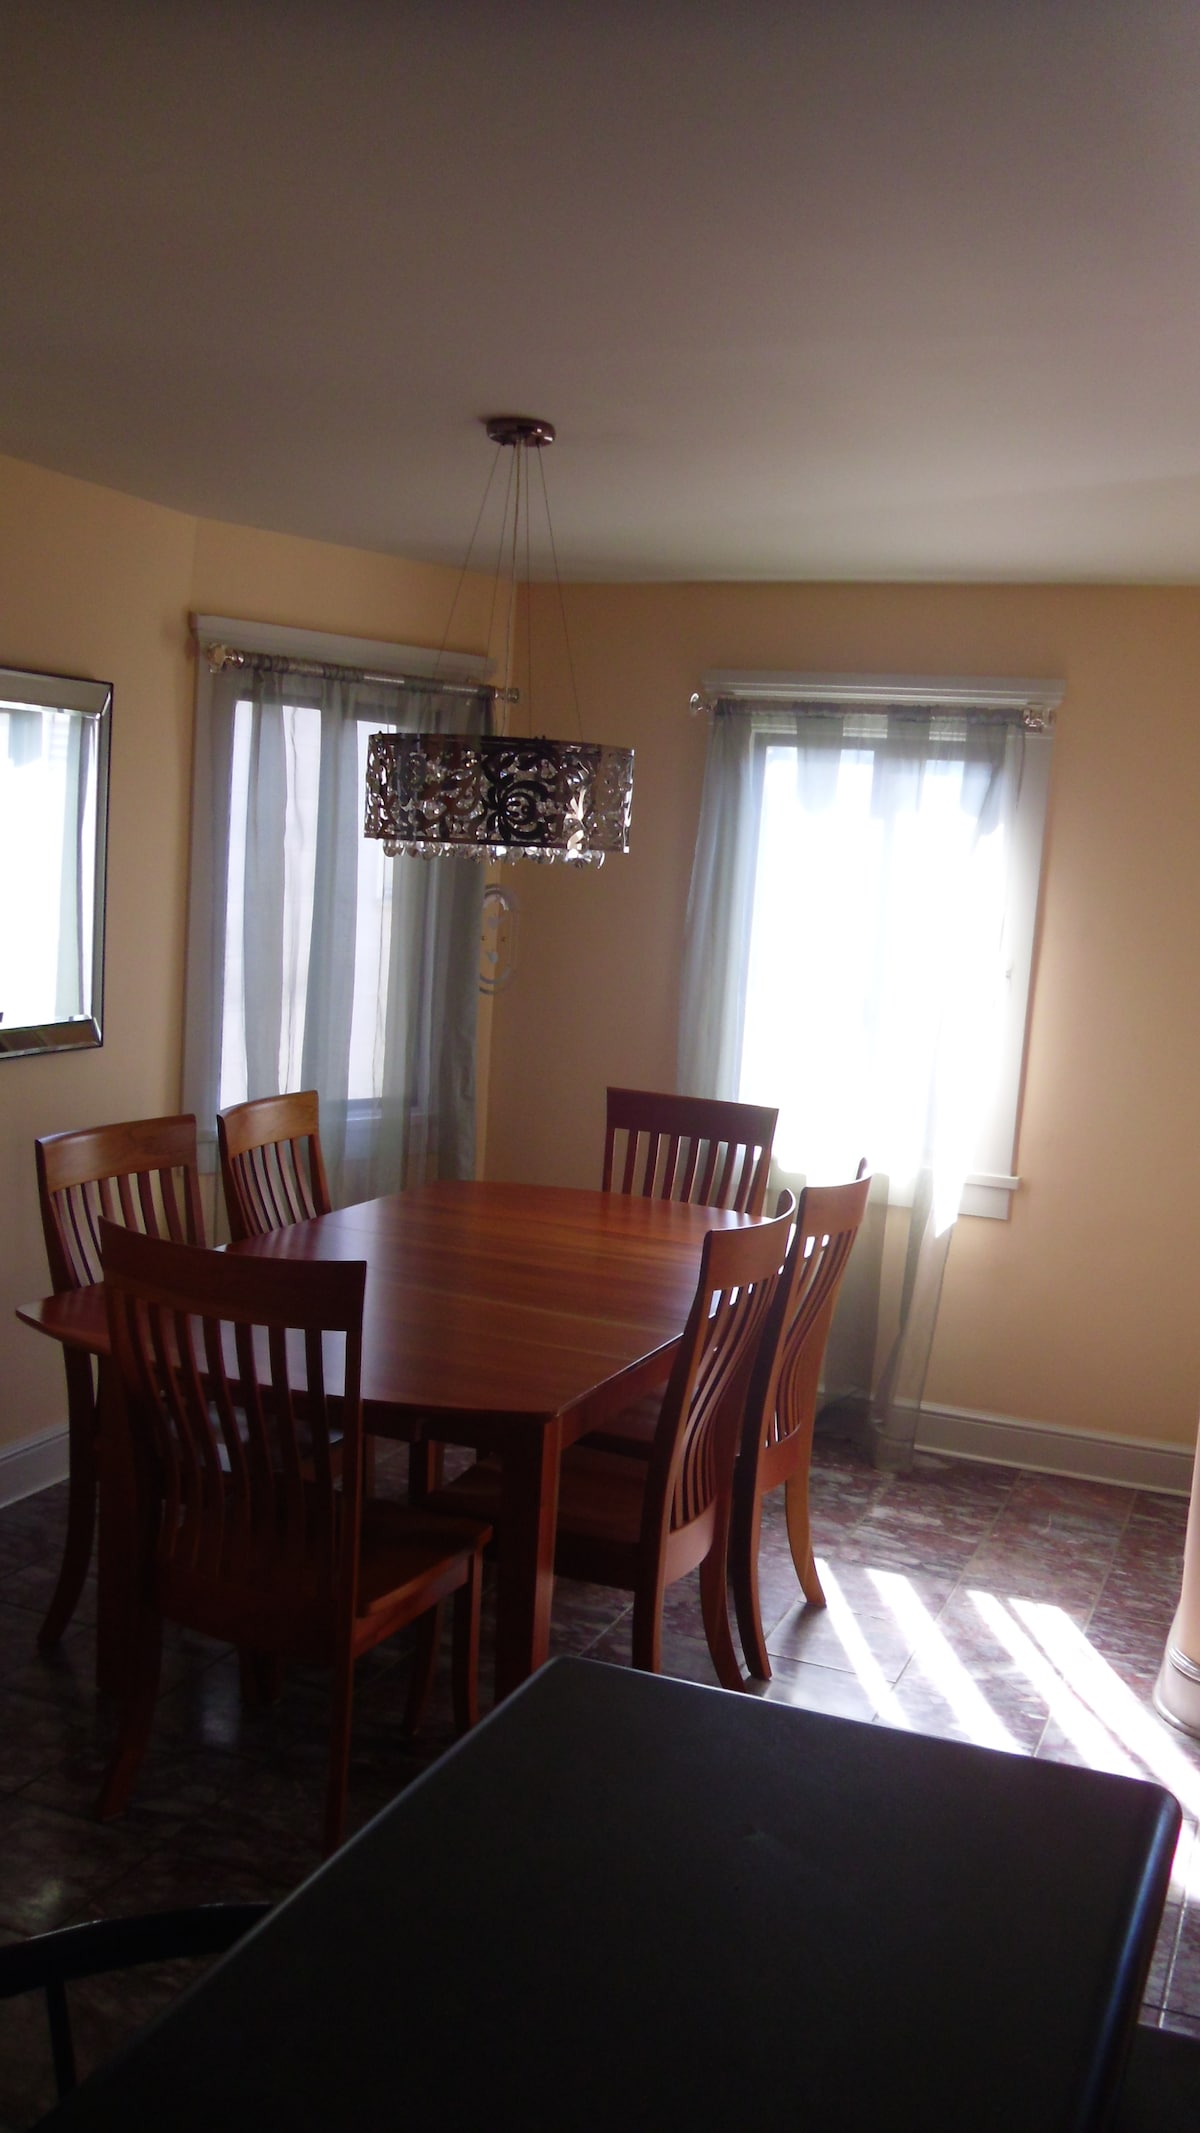 Large dining area with cherry table and chairs.